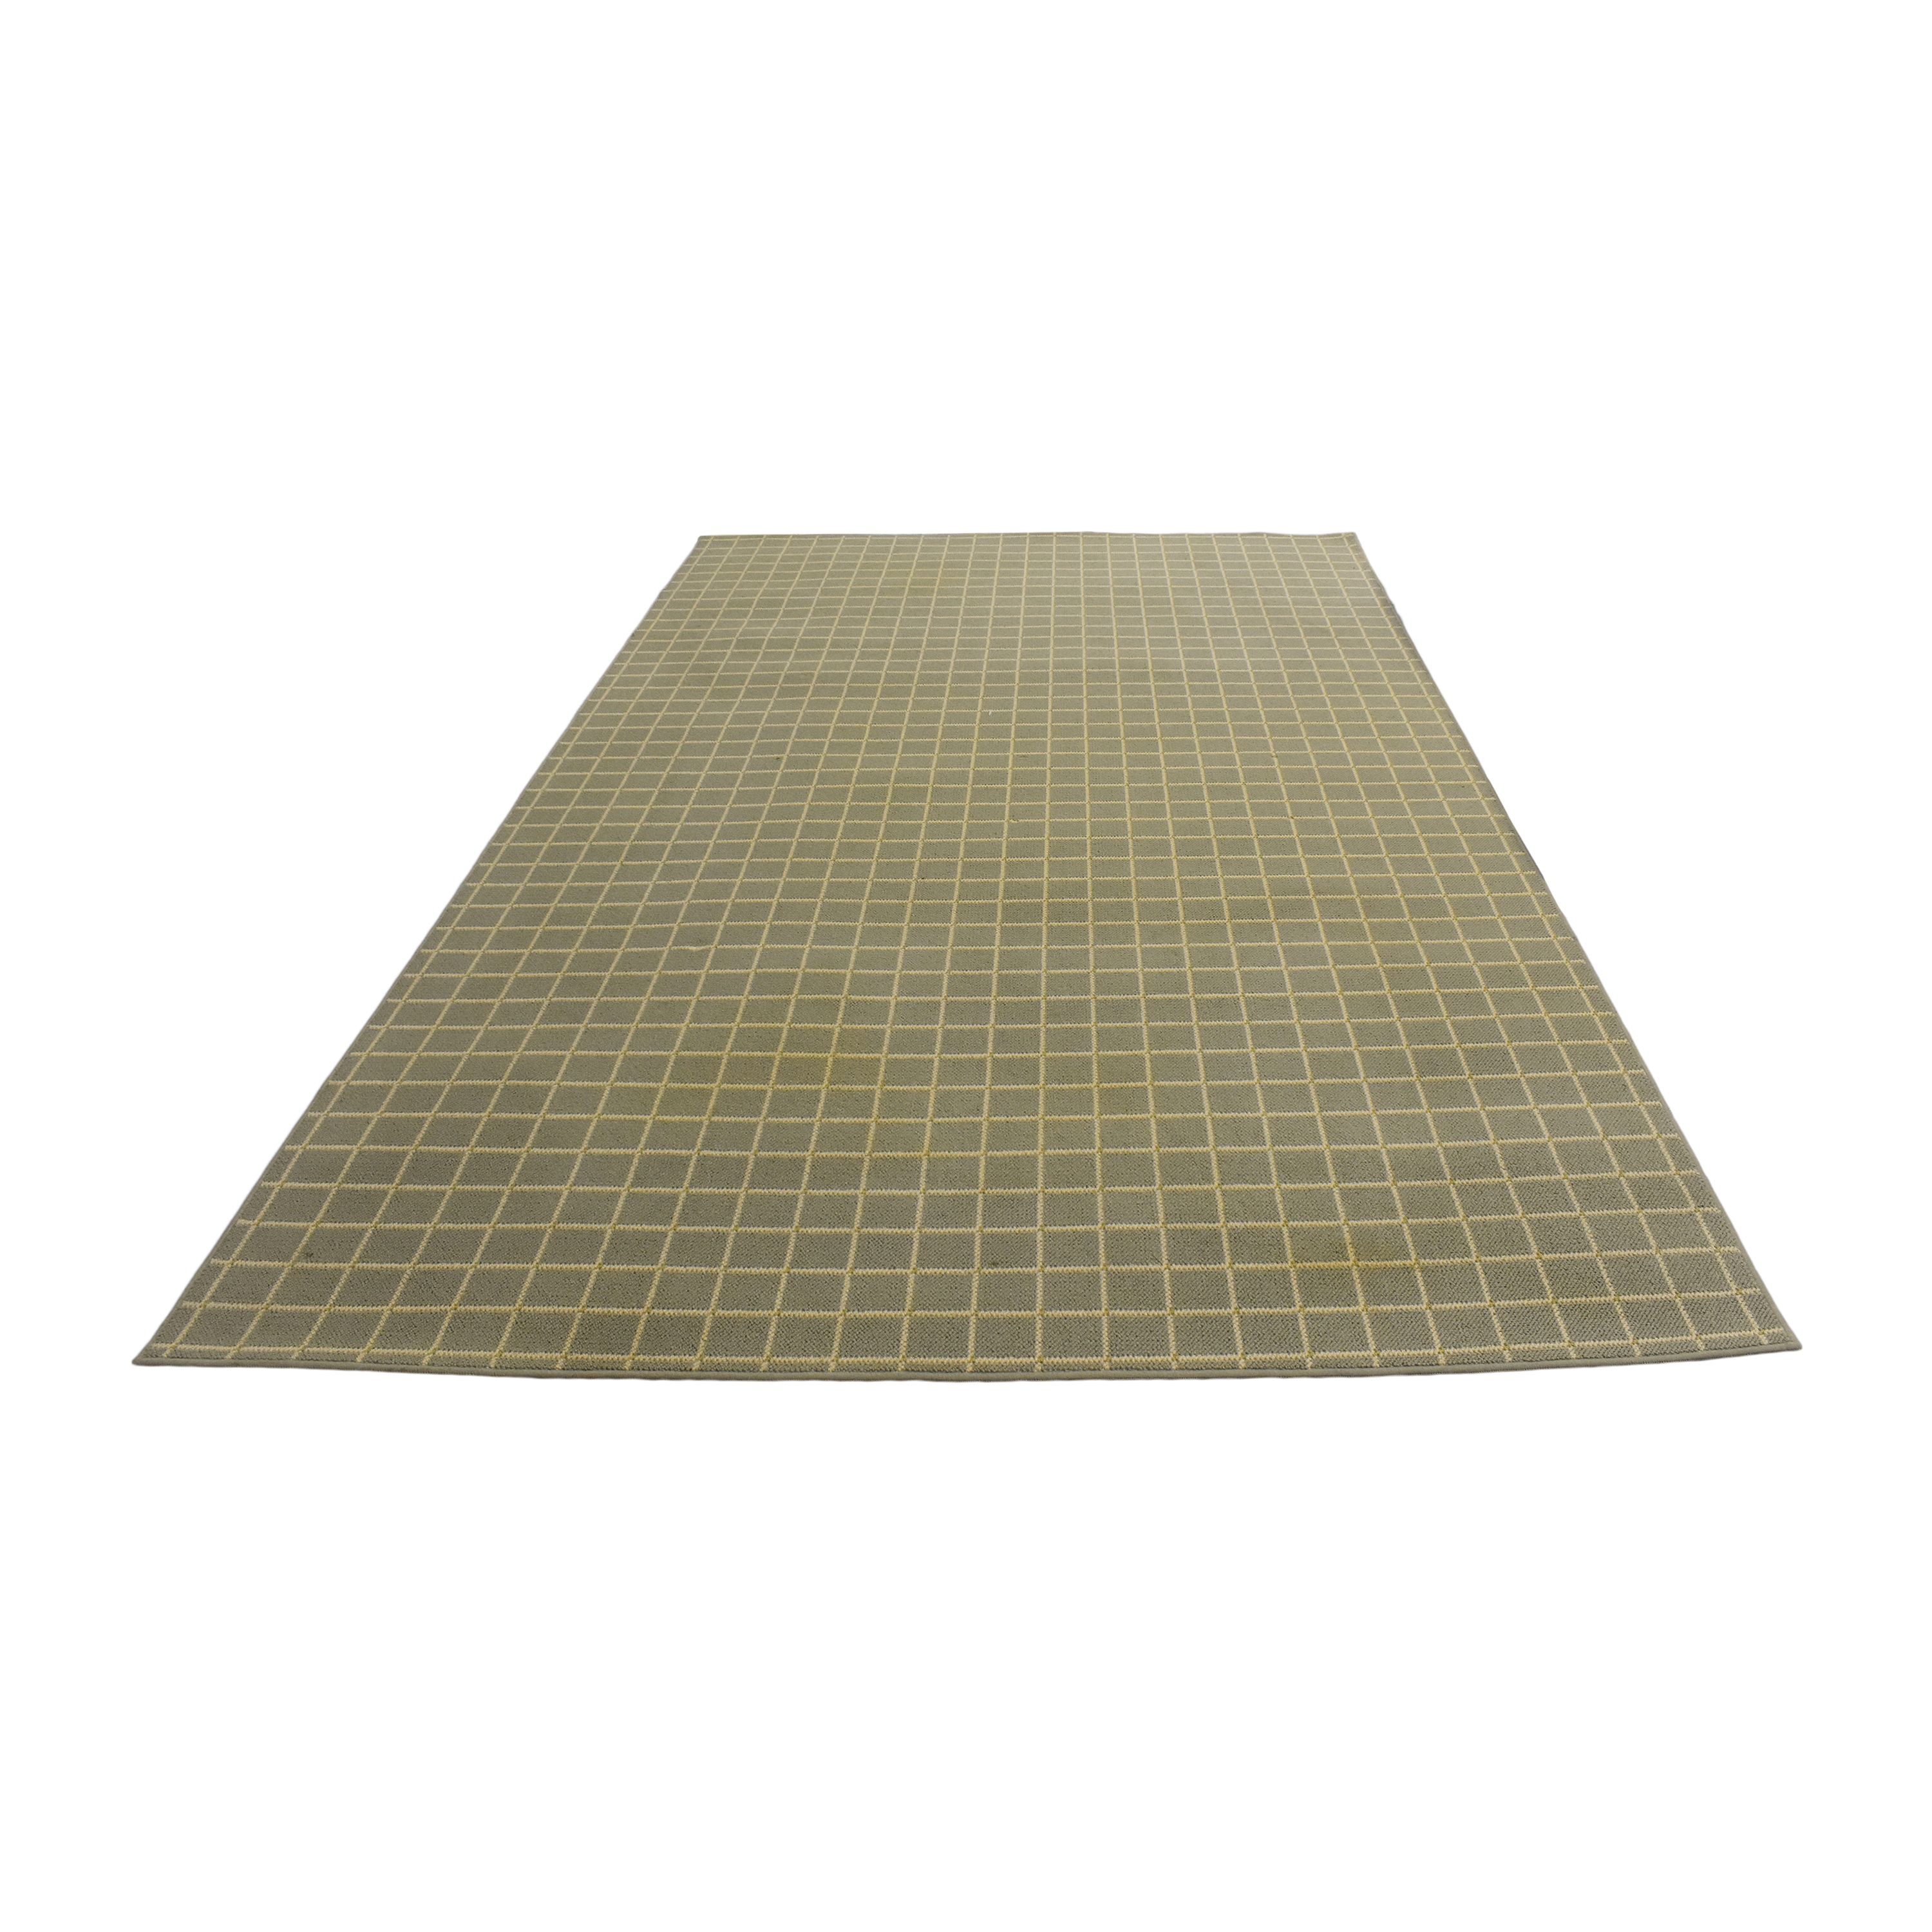 Patterned Area Rug price